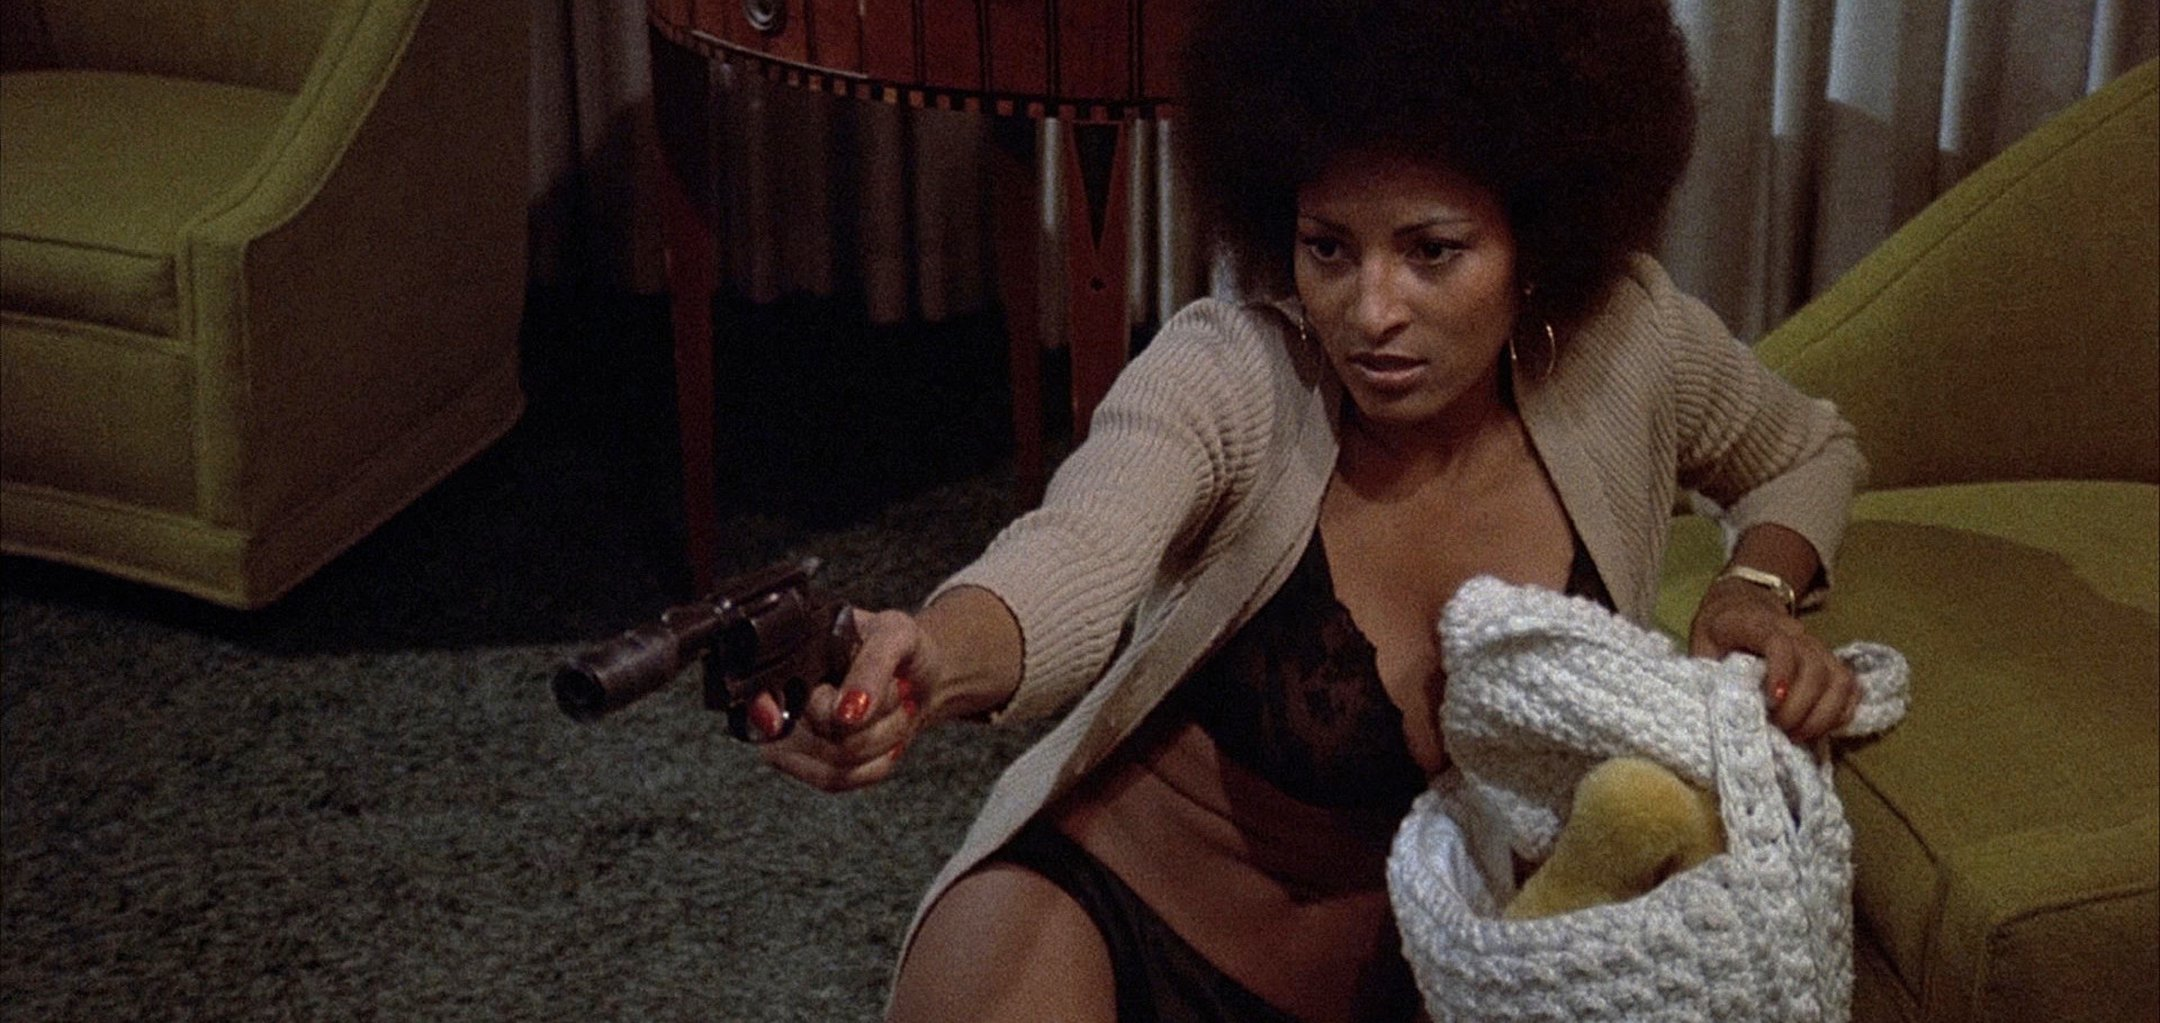 Pam Grier in Coffy (1973) - hero image